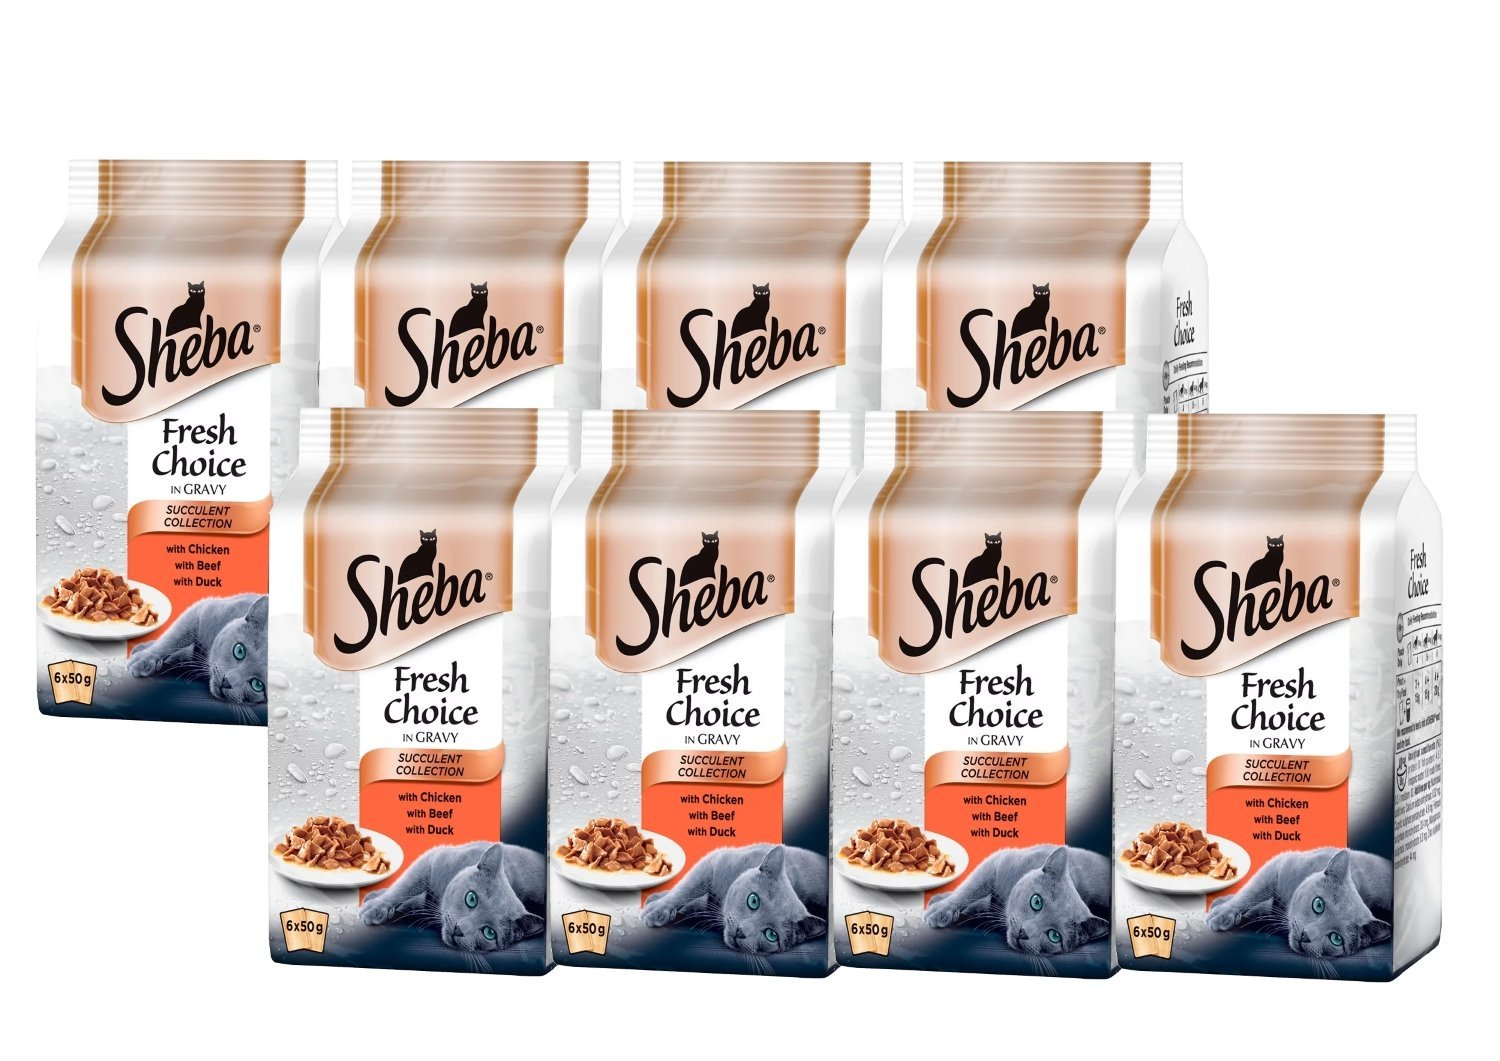 Sheba Fresh Choice Estuches de Gato Collection, 6 x 50 G - Paquete de 8 (Total 48 Bolsas): Amazon.es: Productos para mascotas